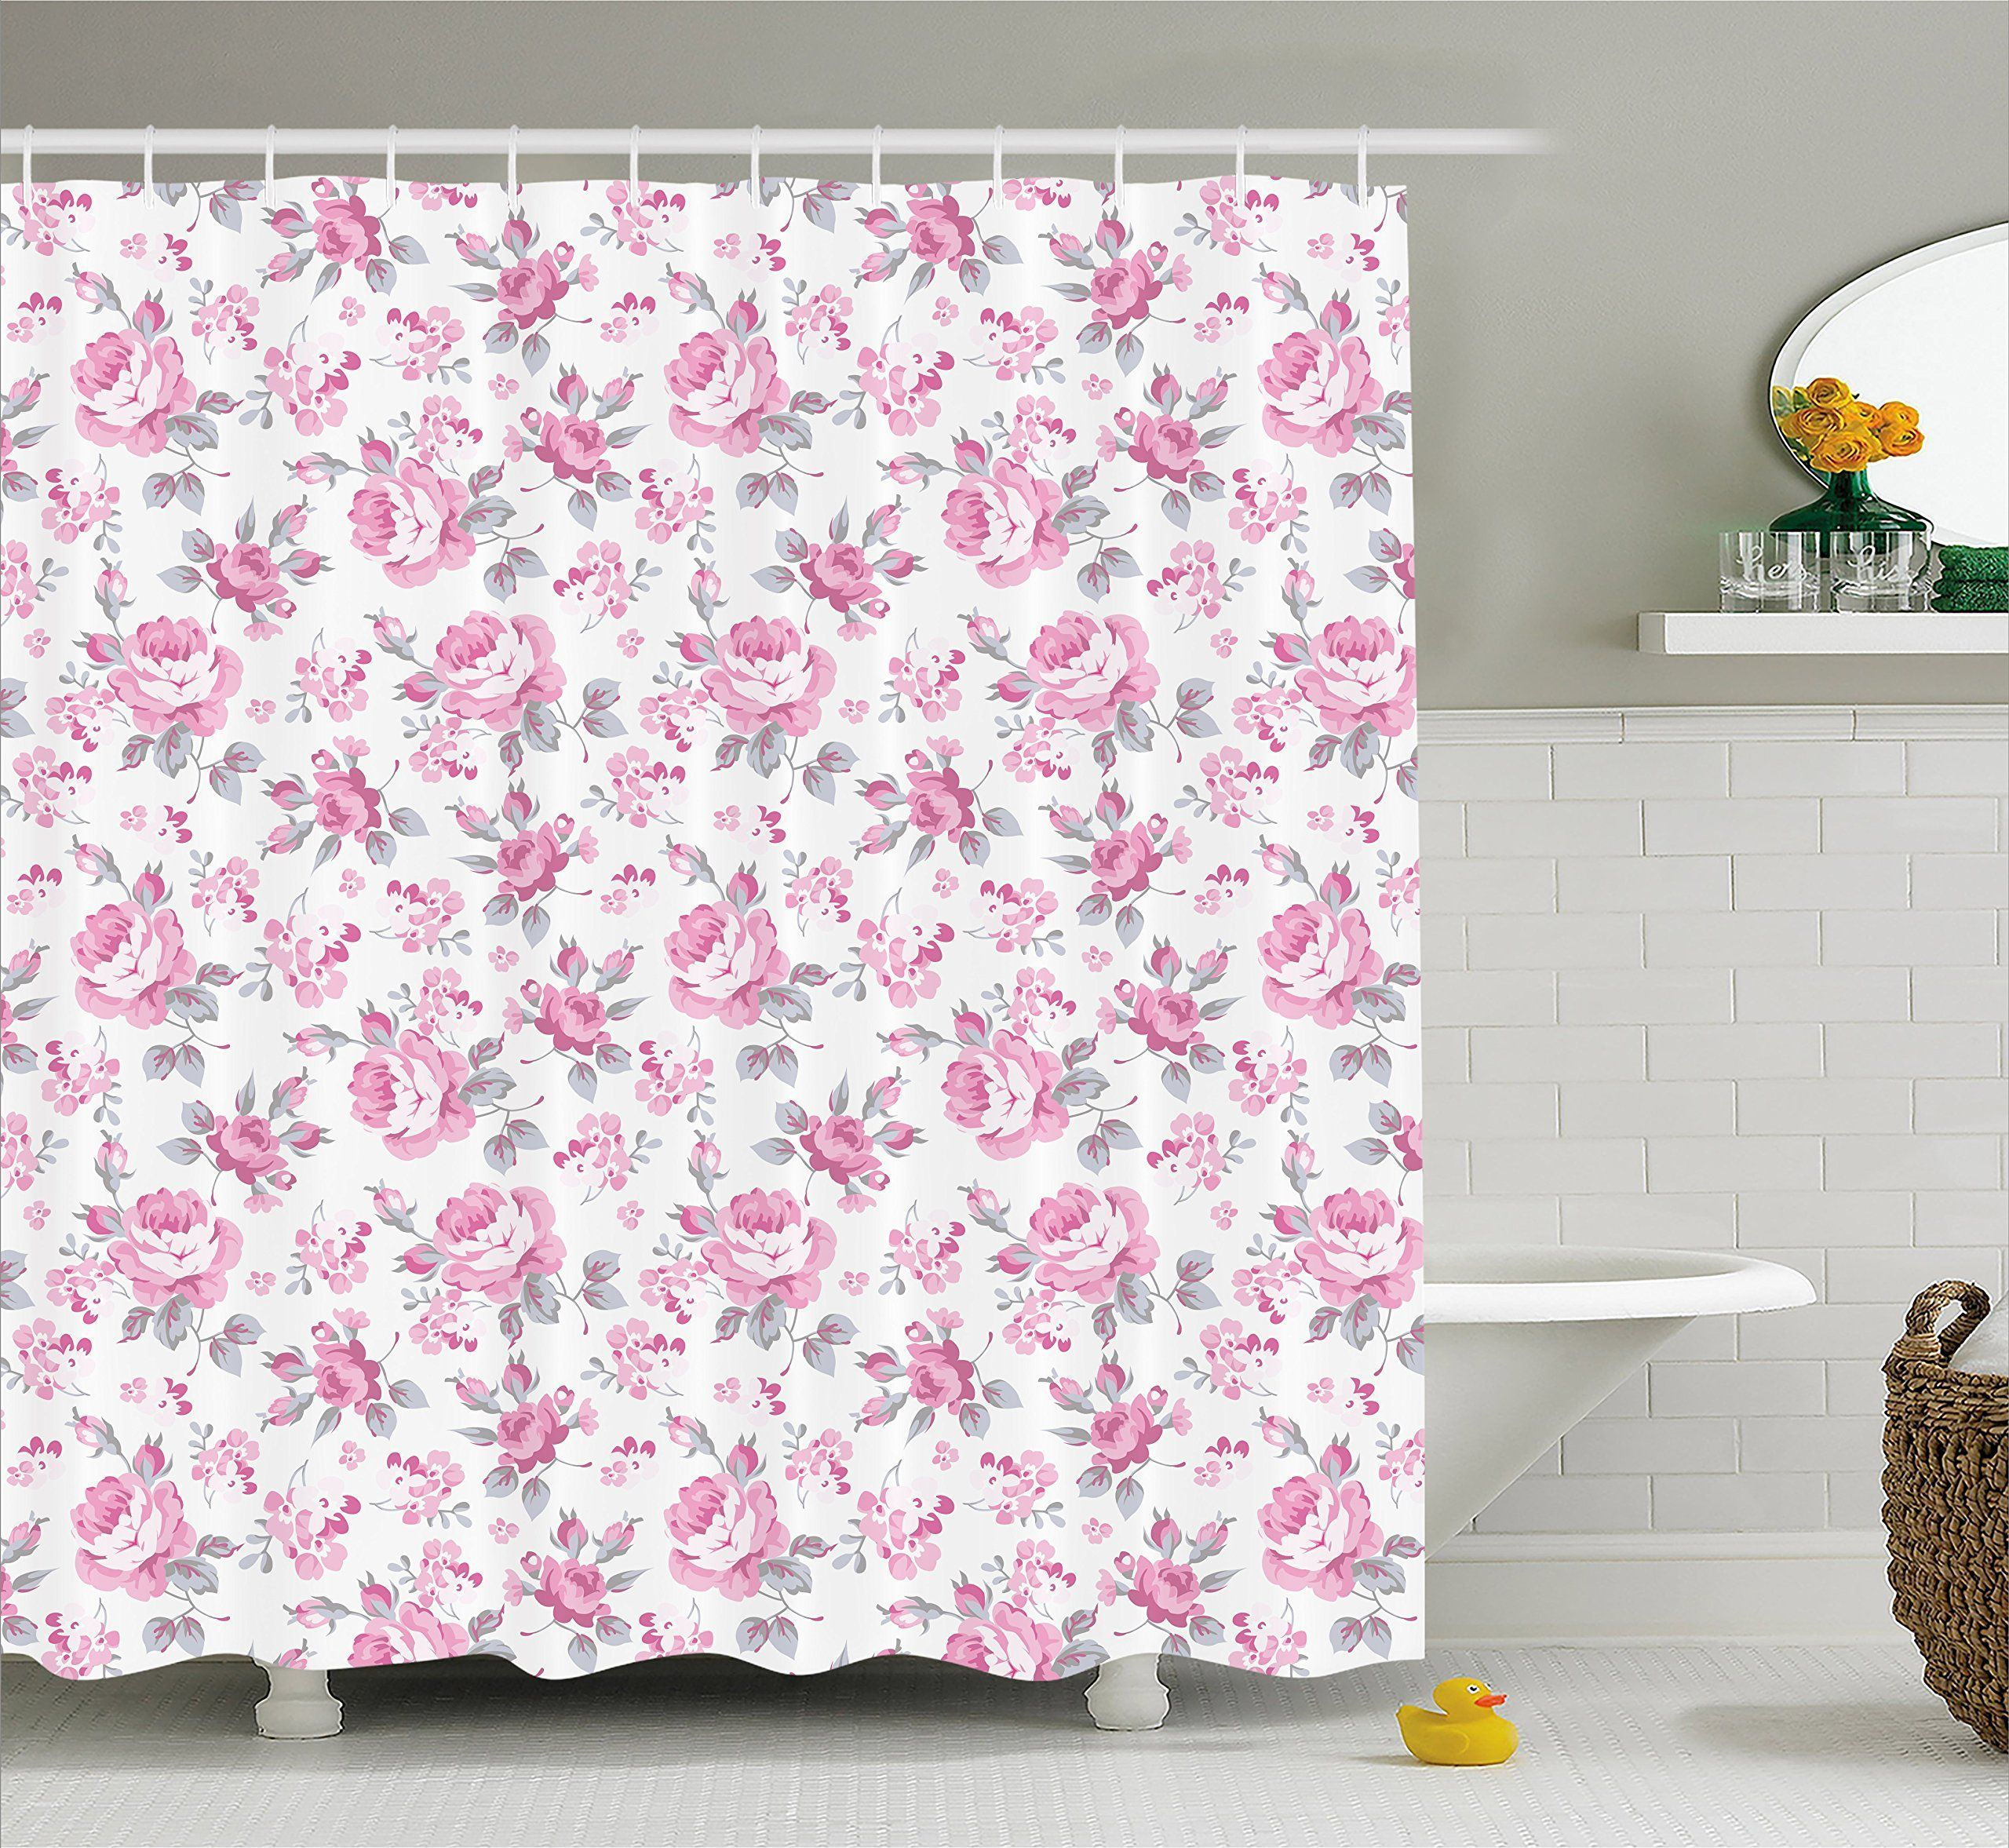 Shabby Chic Decor Shower Curtain By Ambesonne Pink Roses With Grey